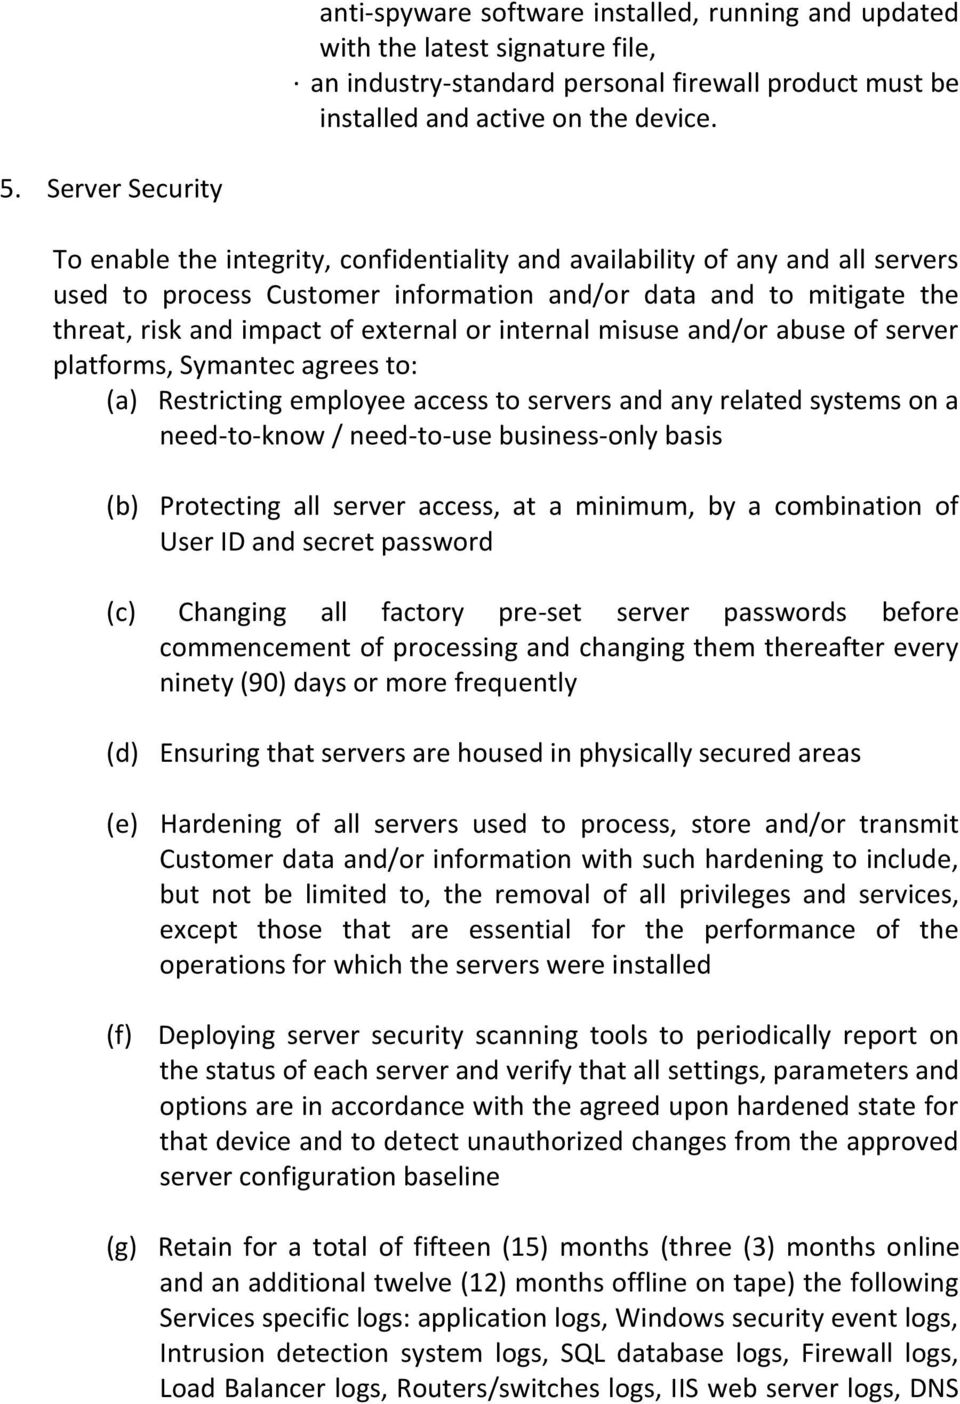 external or internal misuse and/or abuse of server platforms, Symantec agrees to: (a) Restricting employee access to servers and any related systems on a need-to-know / need-to-use business-only